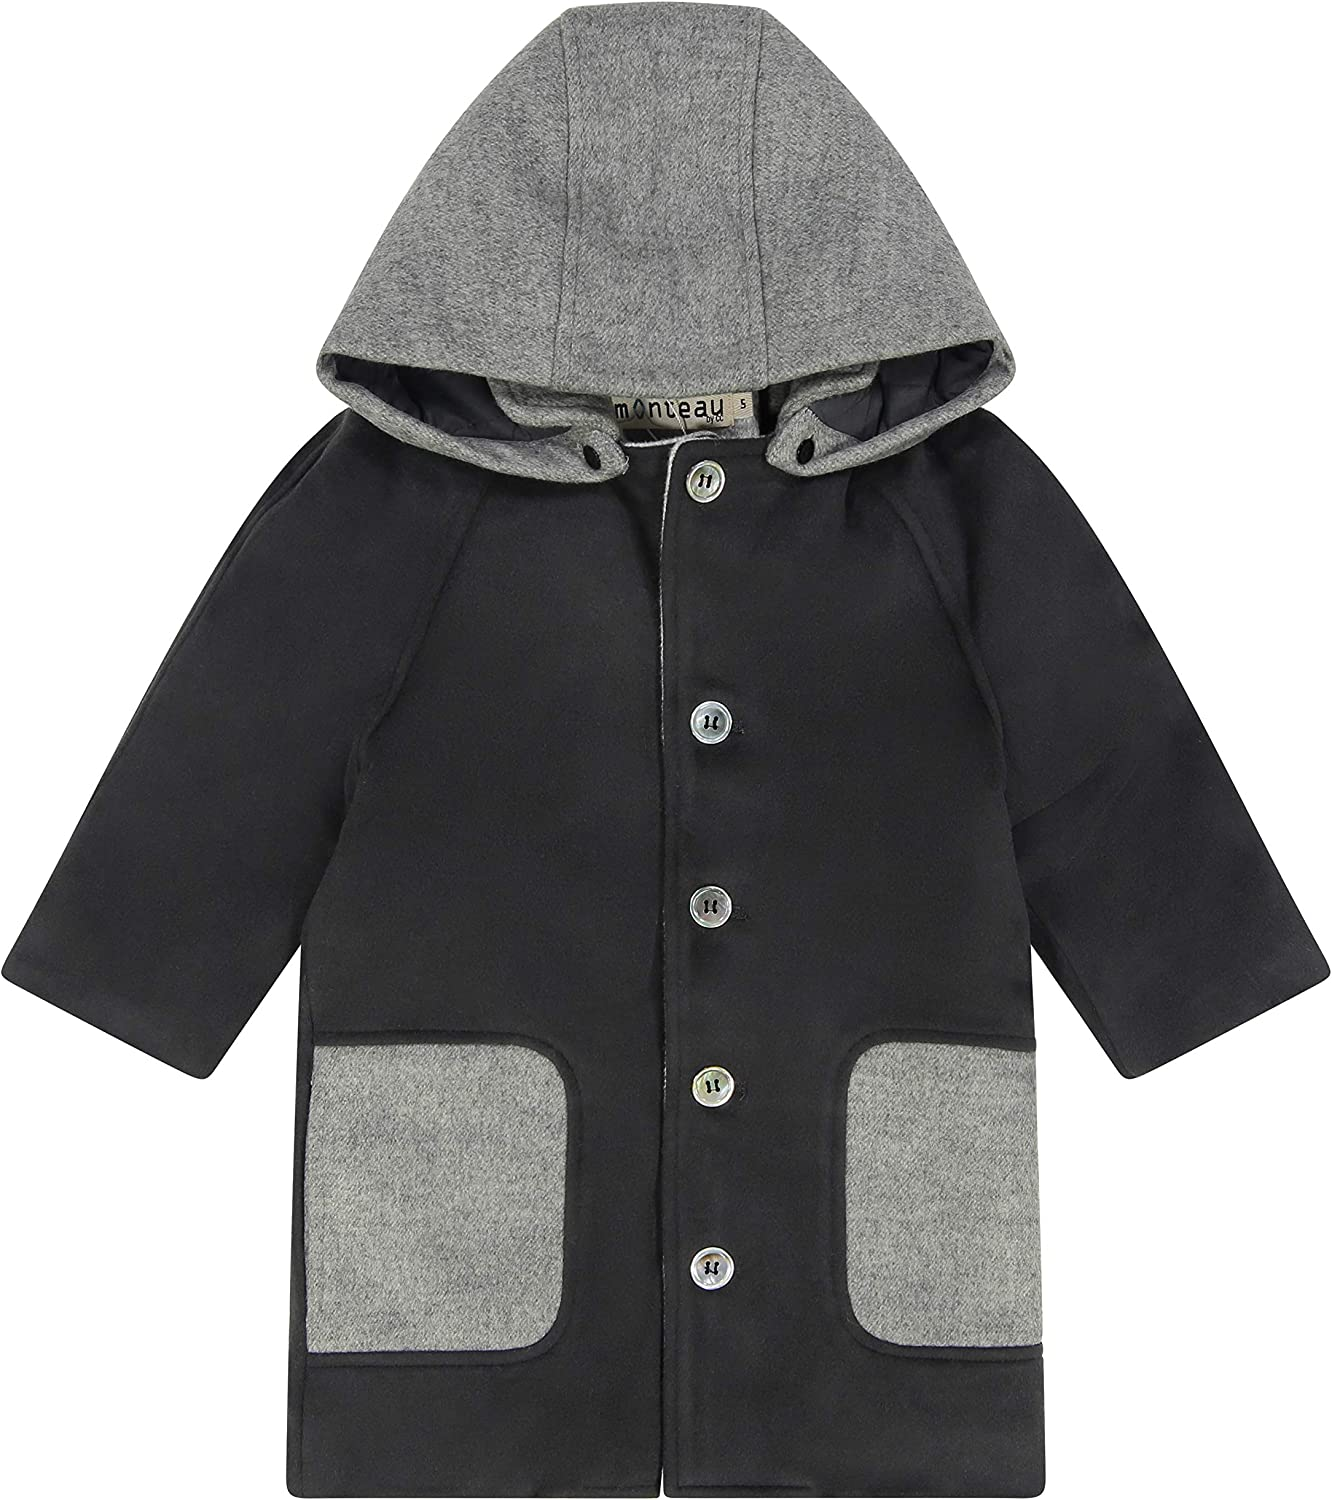 Cozy Coop Wool Hooded Duffle Coat for Boys and Girls Winter Wear